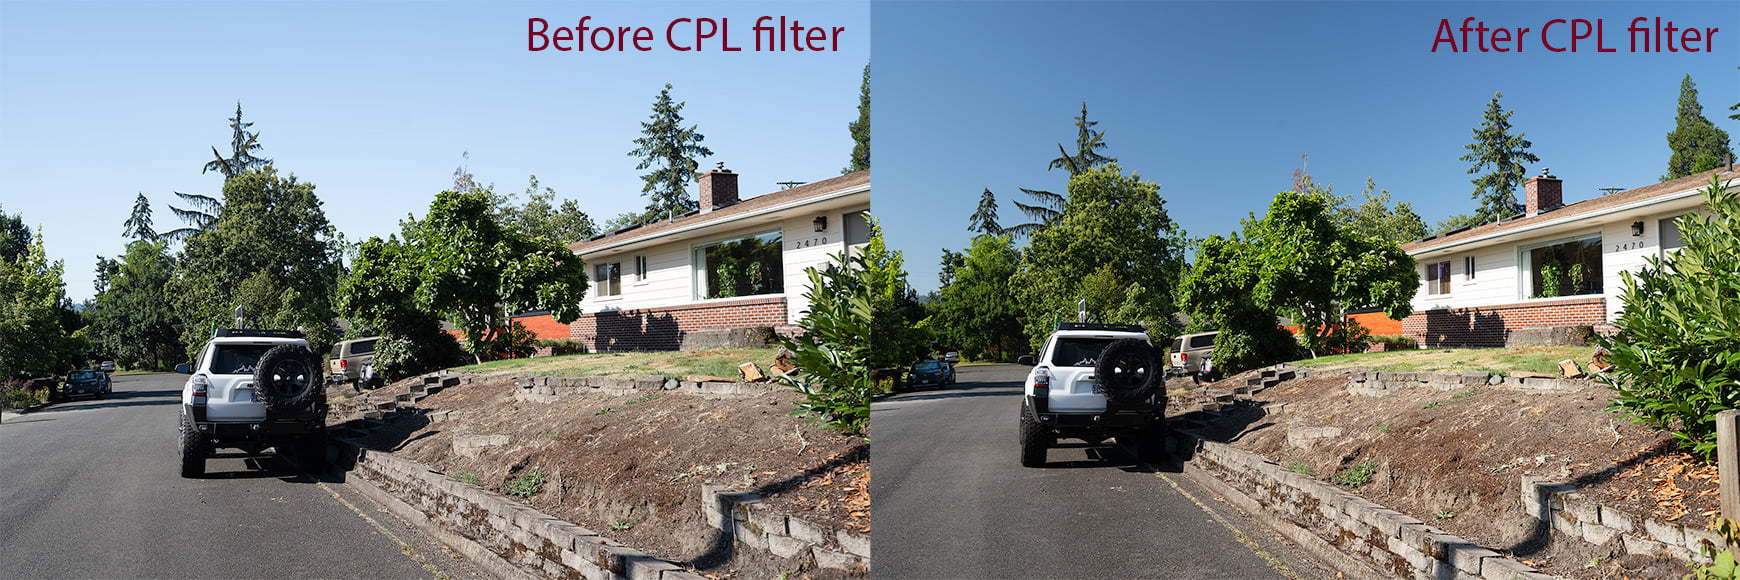 Before and after using a polarizer for lens